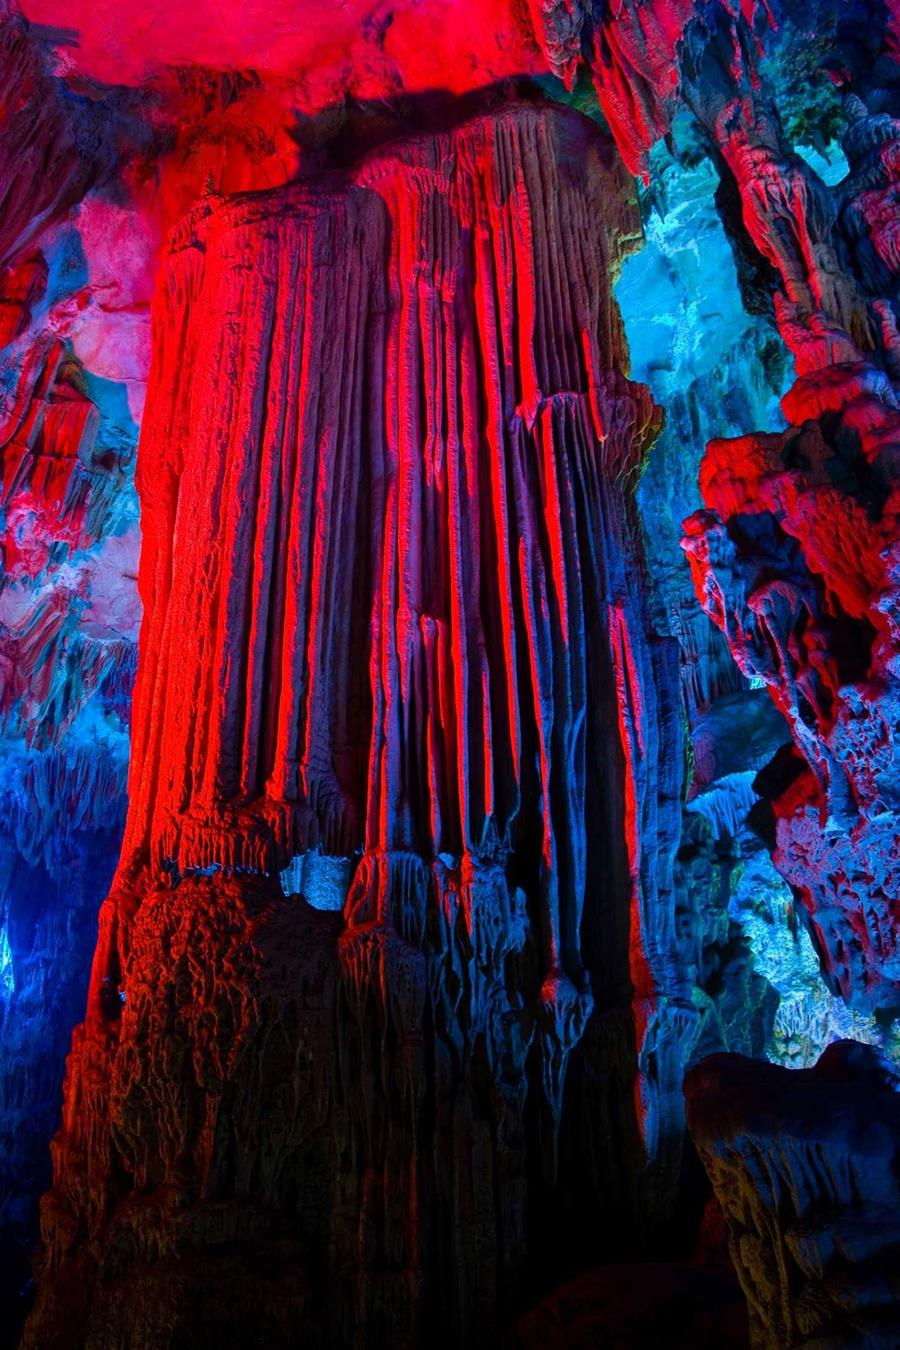 Reed Flute Cave Tourist Attraction In China Xcitefun Net